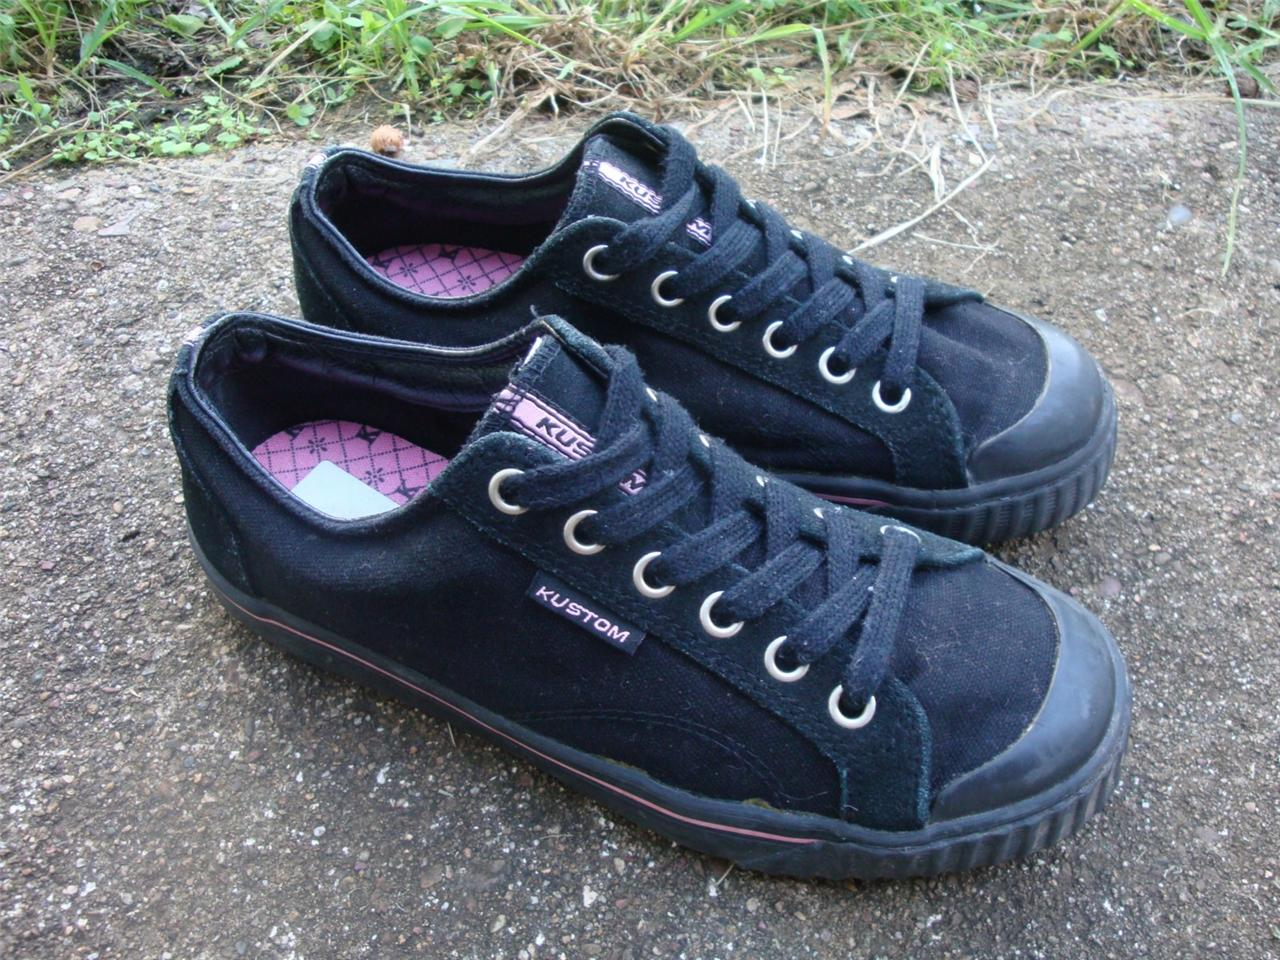 KUSTOM-Girls-Size-7-Black-Skate-Sneaker-Sand-Shoes-MUST-SEE